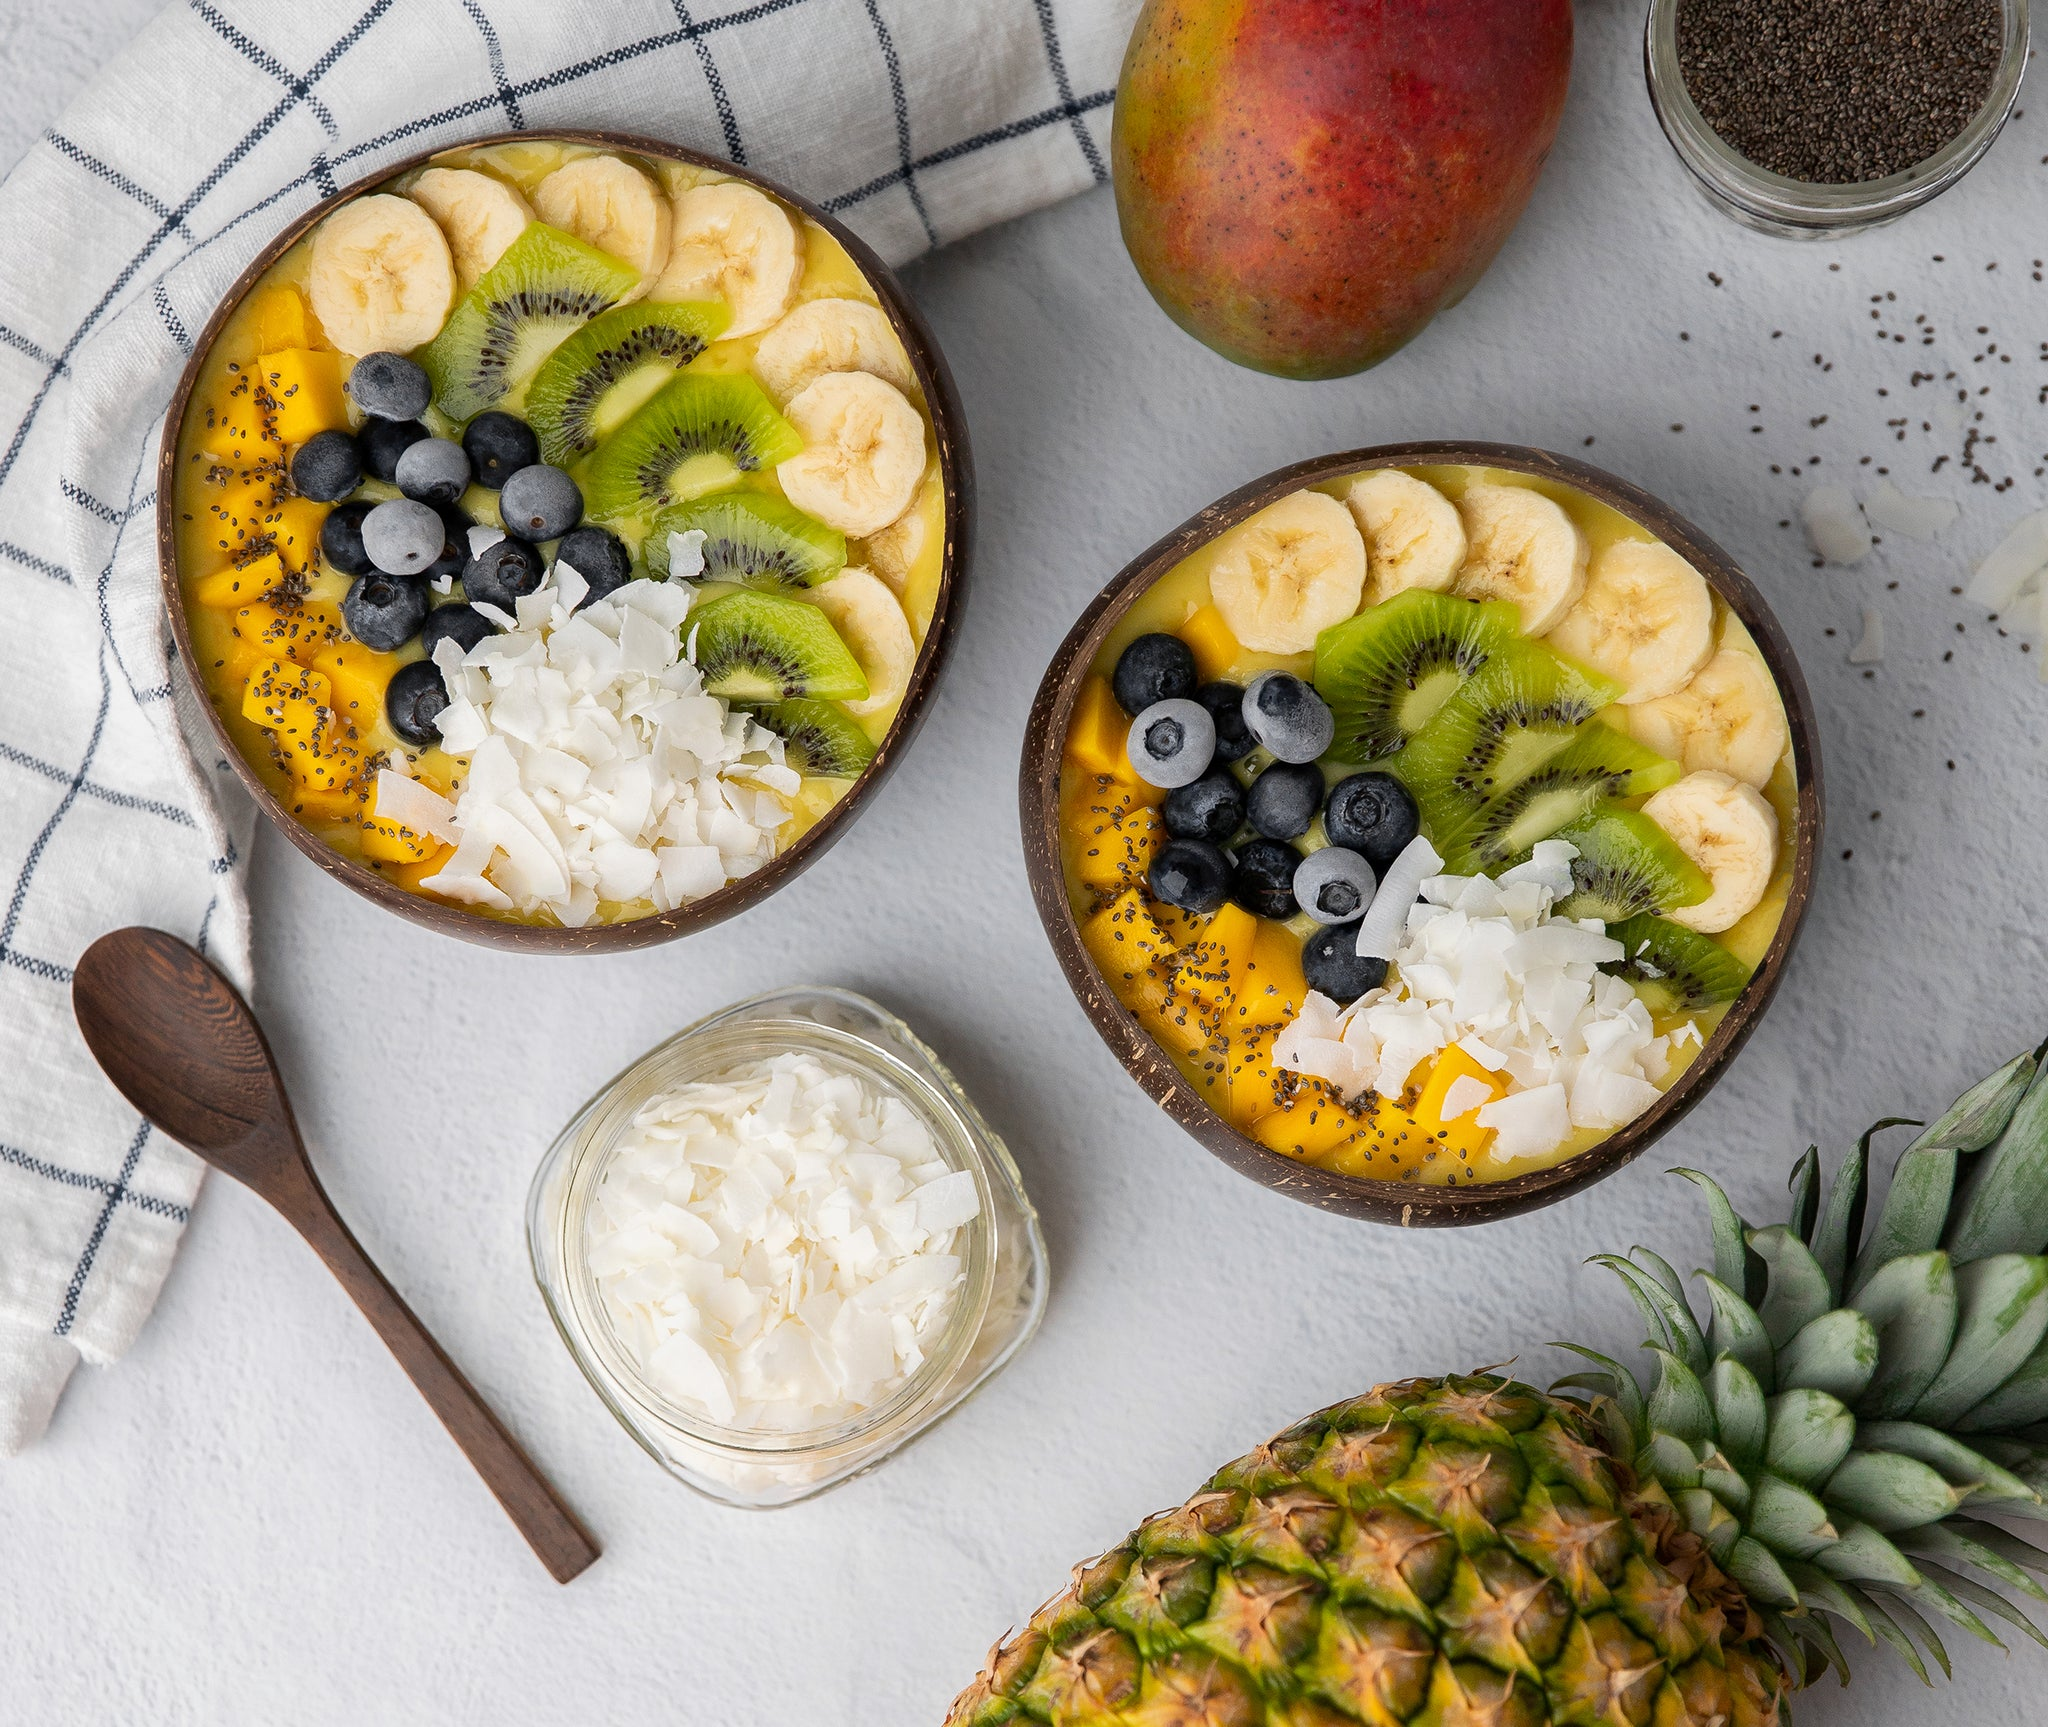 Tropical smoothie bowls with toppings